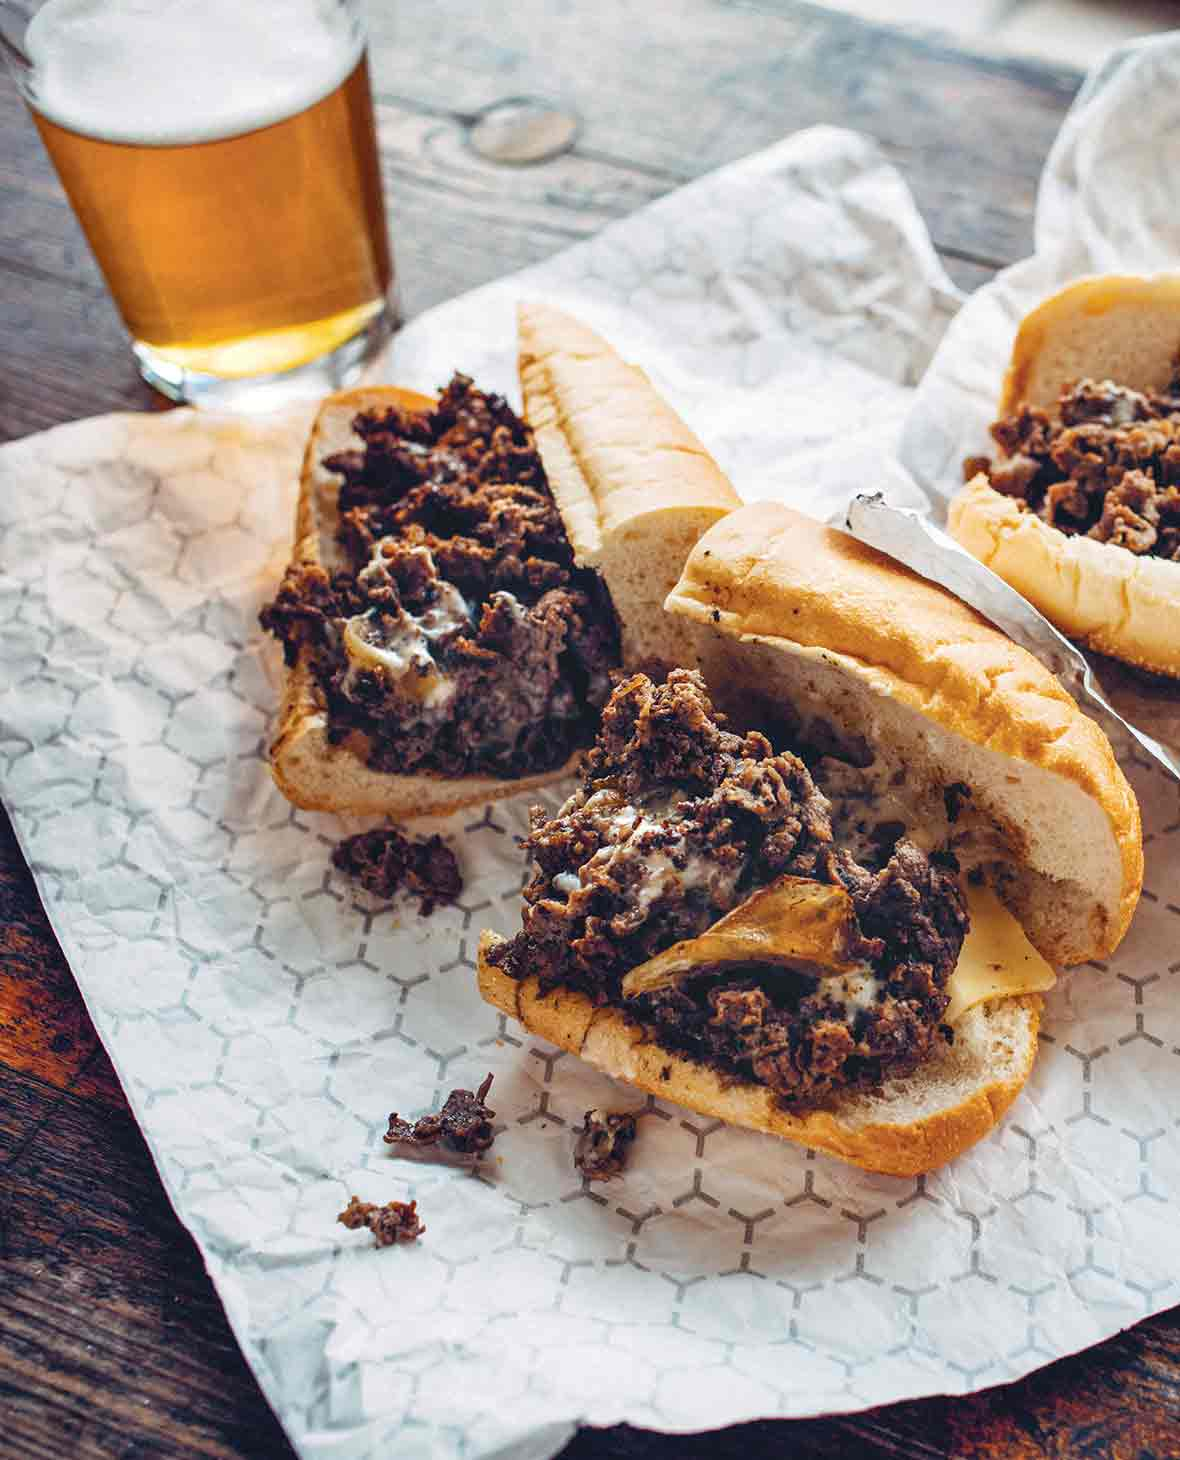 Two Philly cheesesteak sandwiches cut in half on a foil wrapper with a glass of beer in the background.